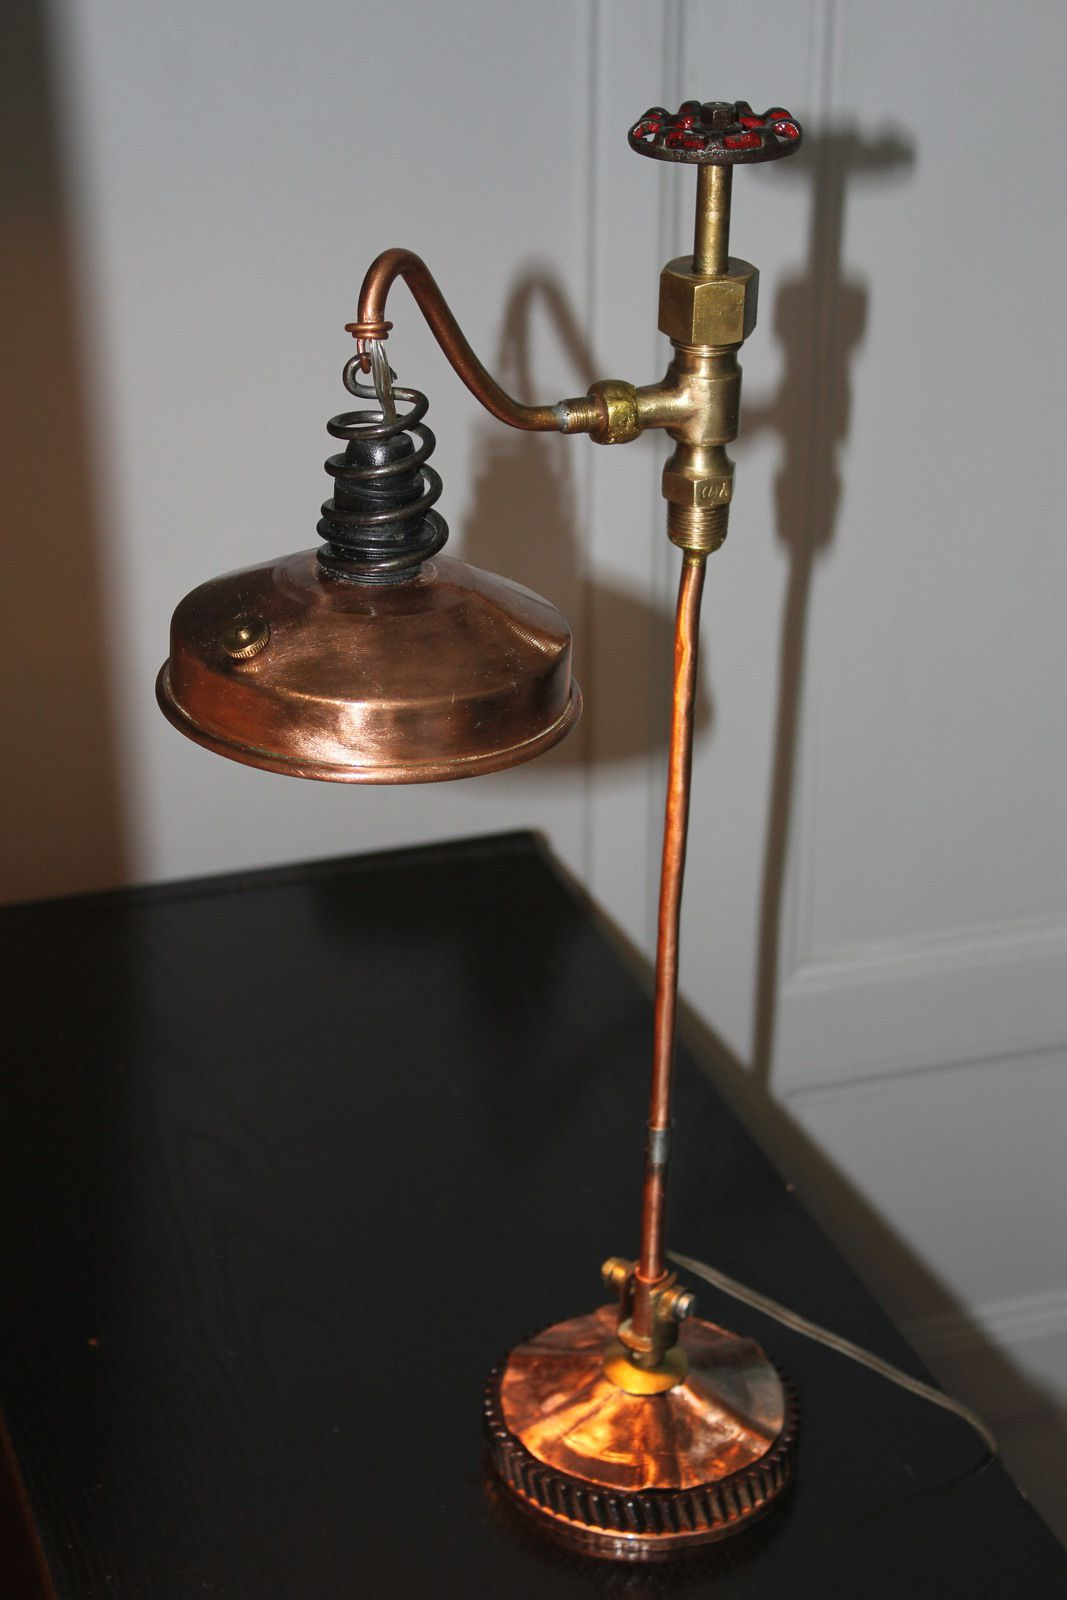 cr ation unique steampunk lampe r cup ancien instrument de mesure ebullioscope. Black Bedroom Furniture Sets. Home Design Ideas